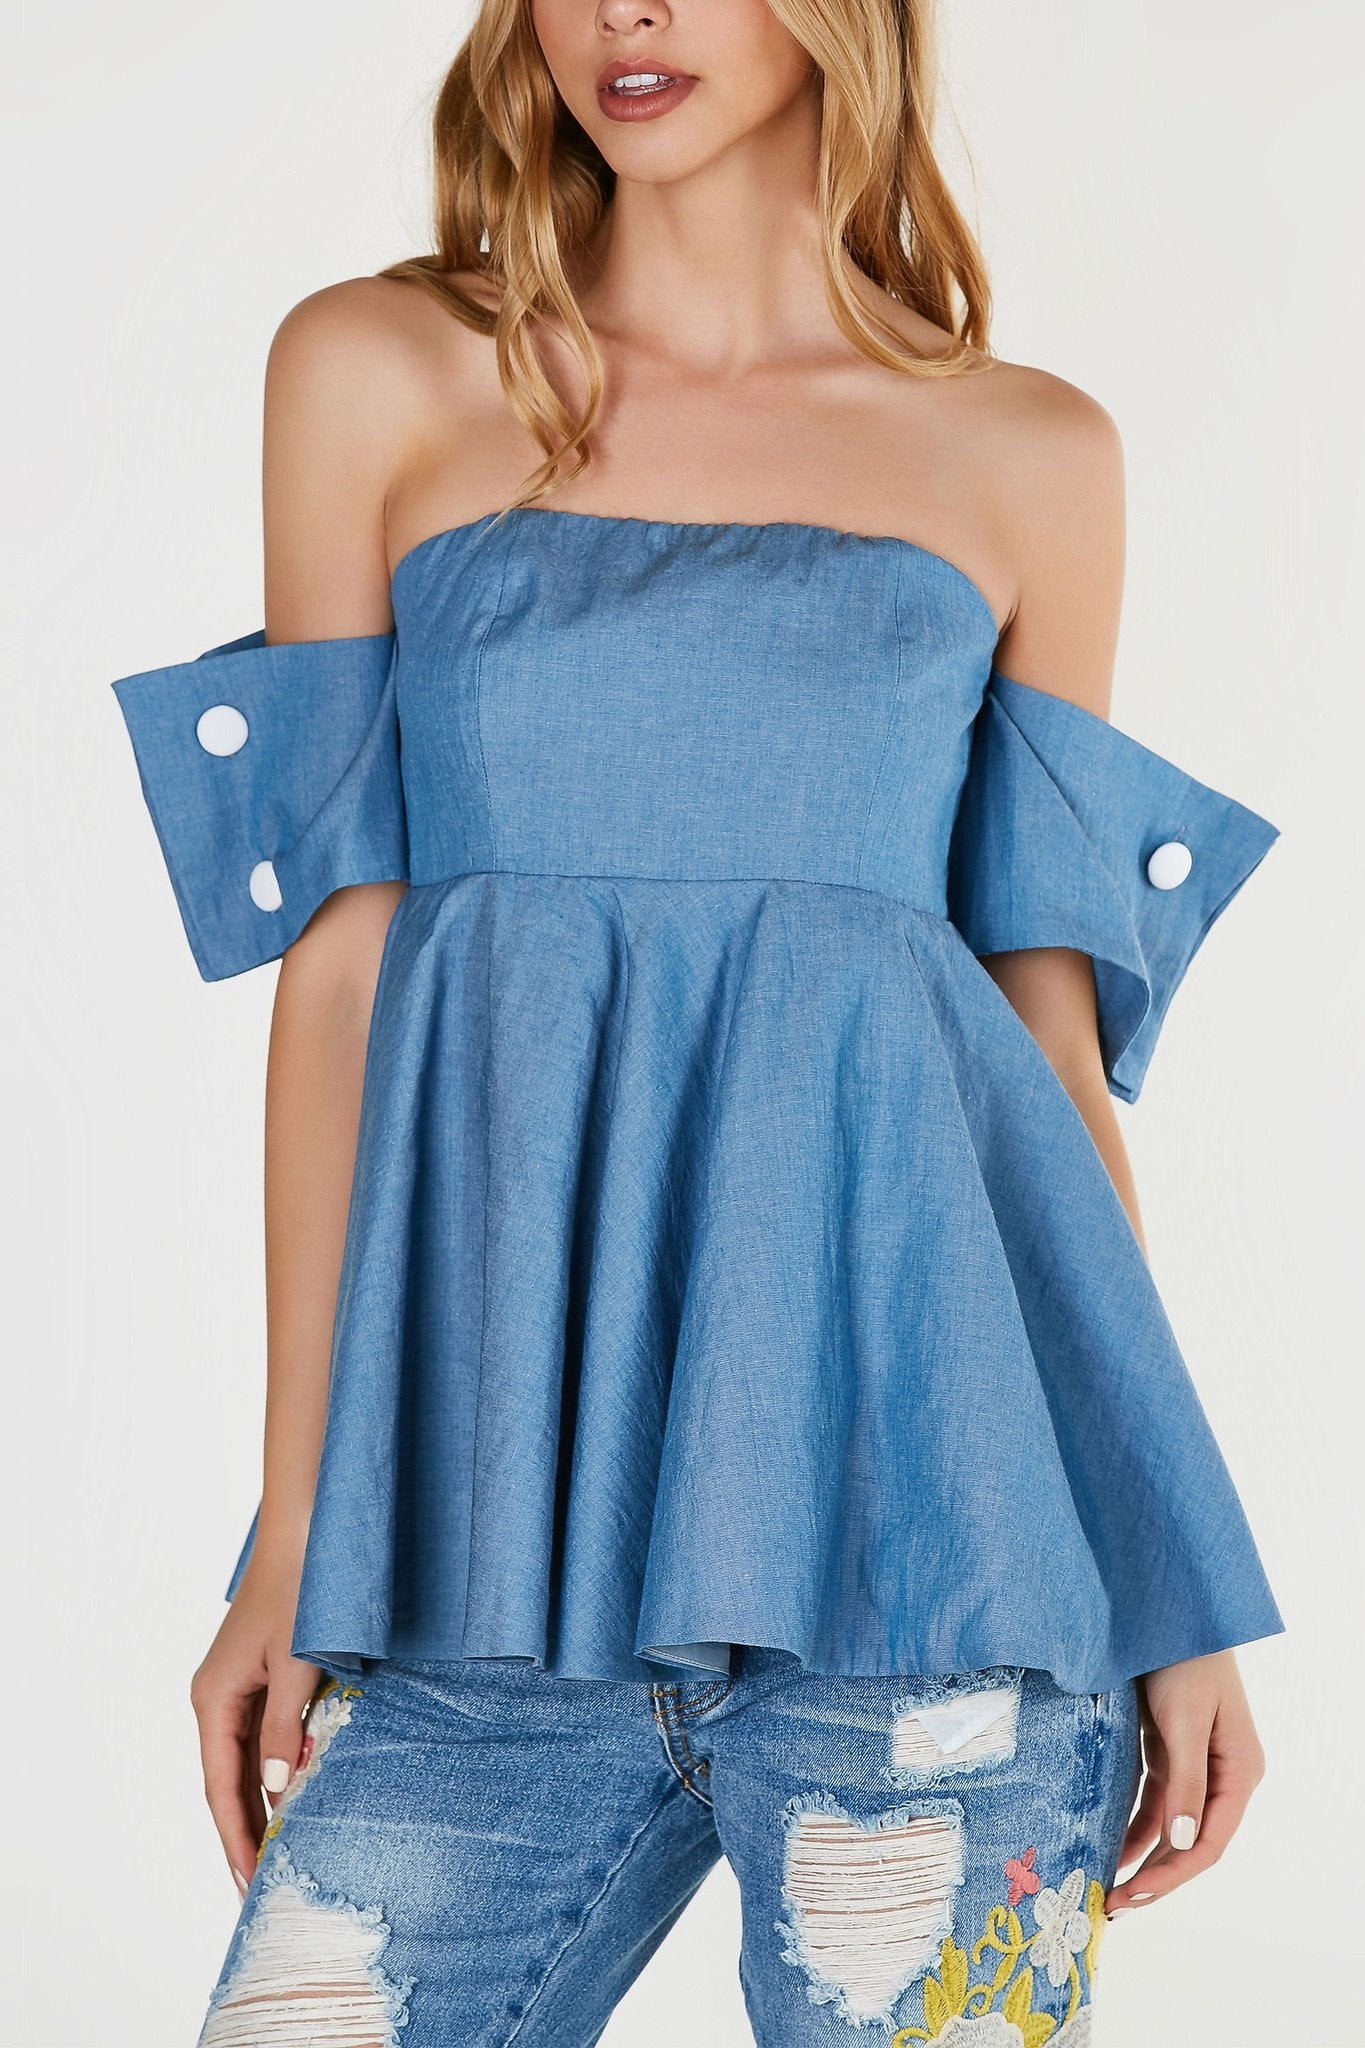 Chic off shoulder top with chambray exterior and smooth lining underneath. Peplum style A-line hem and wrapped sleeves with button closure detailing.